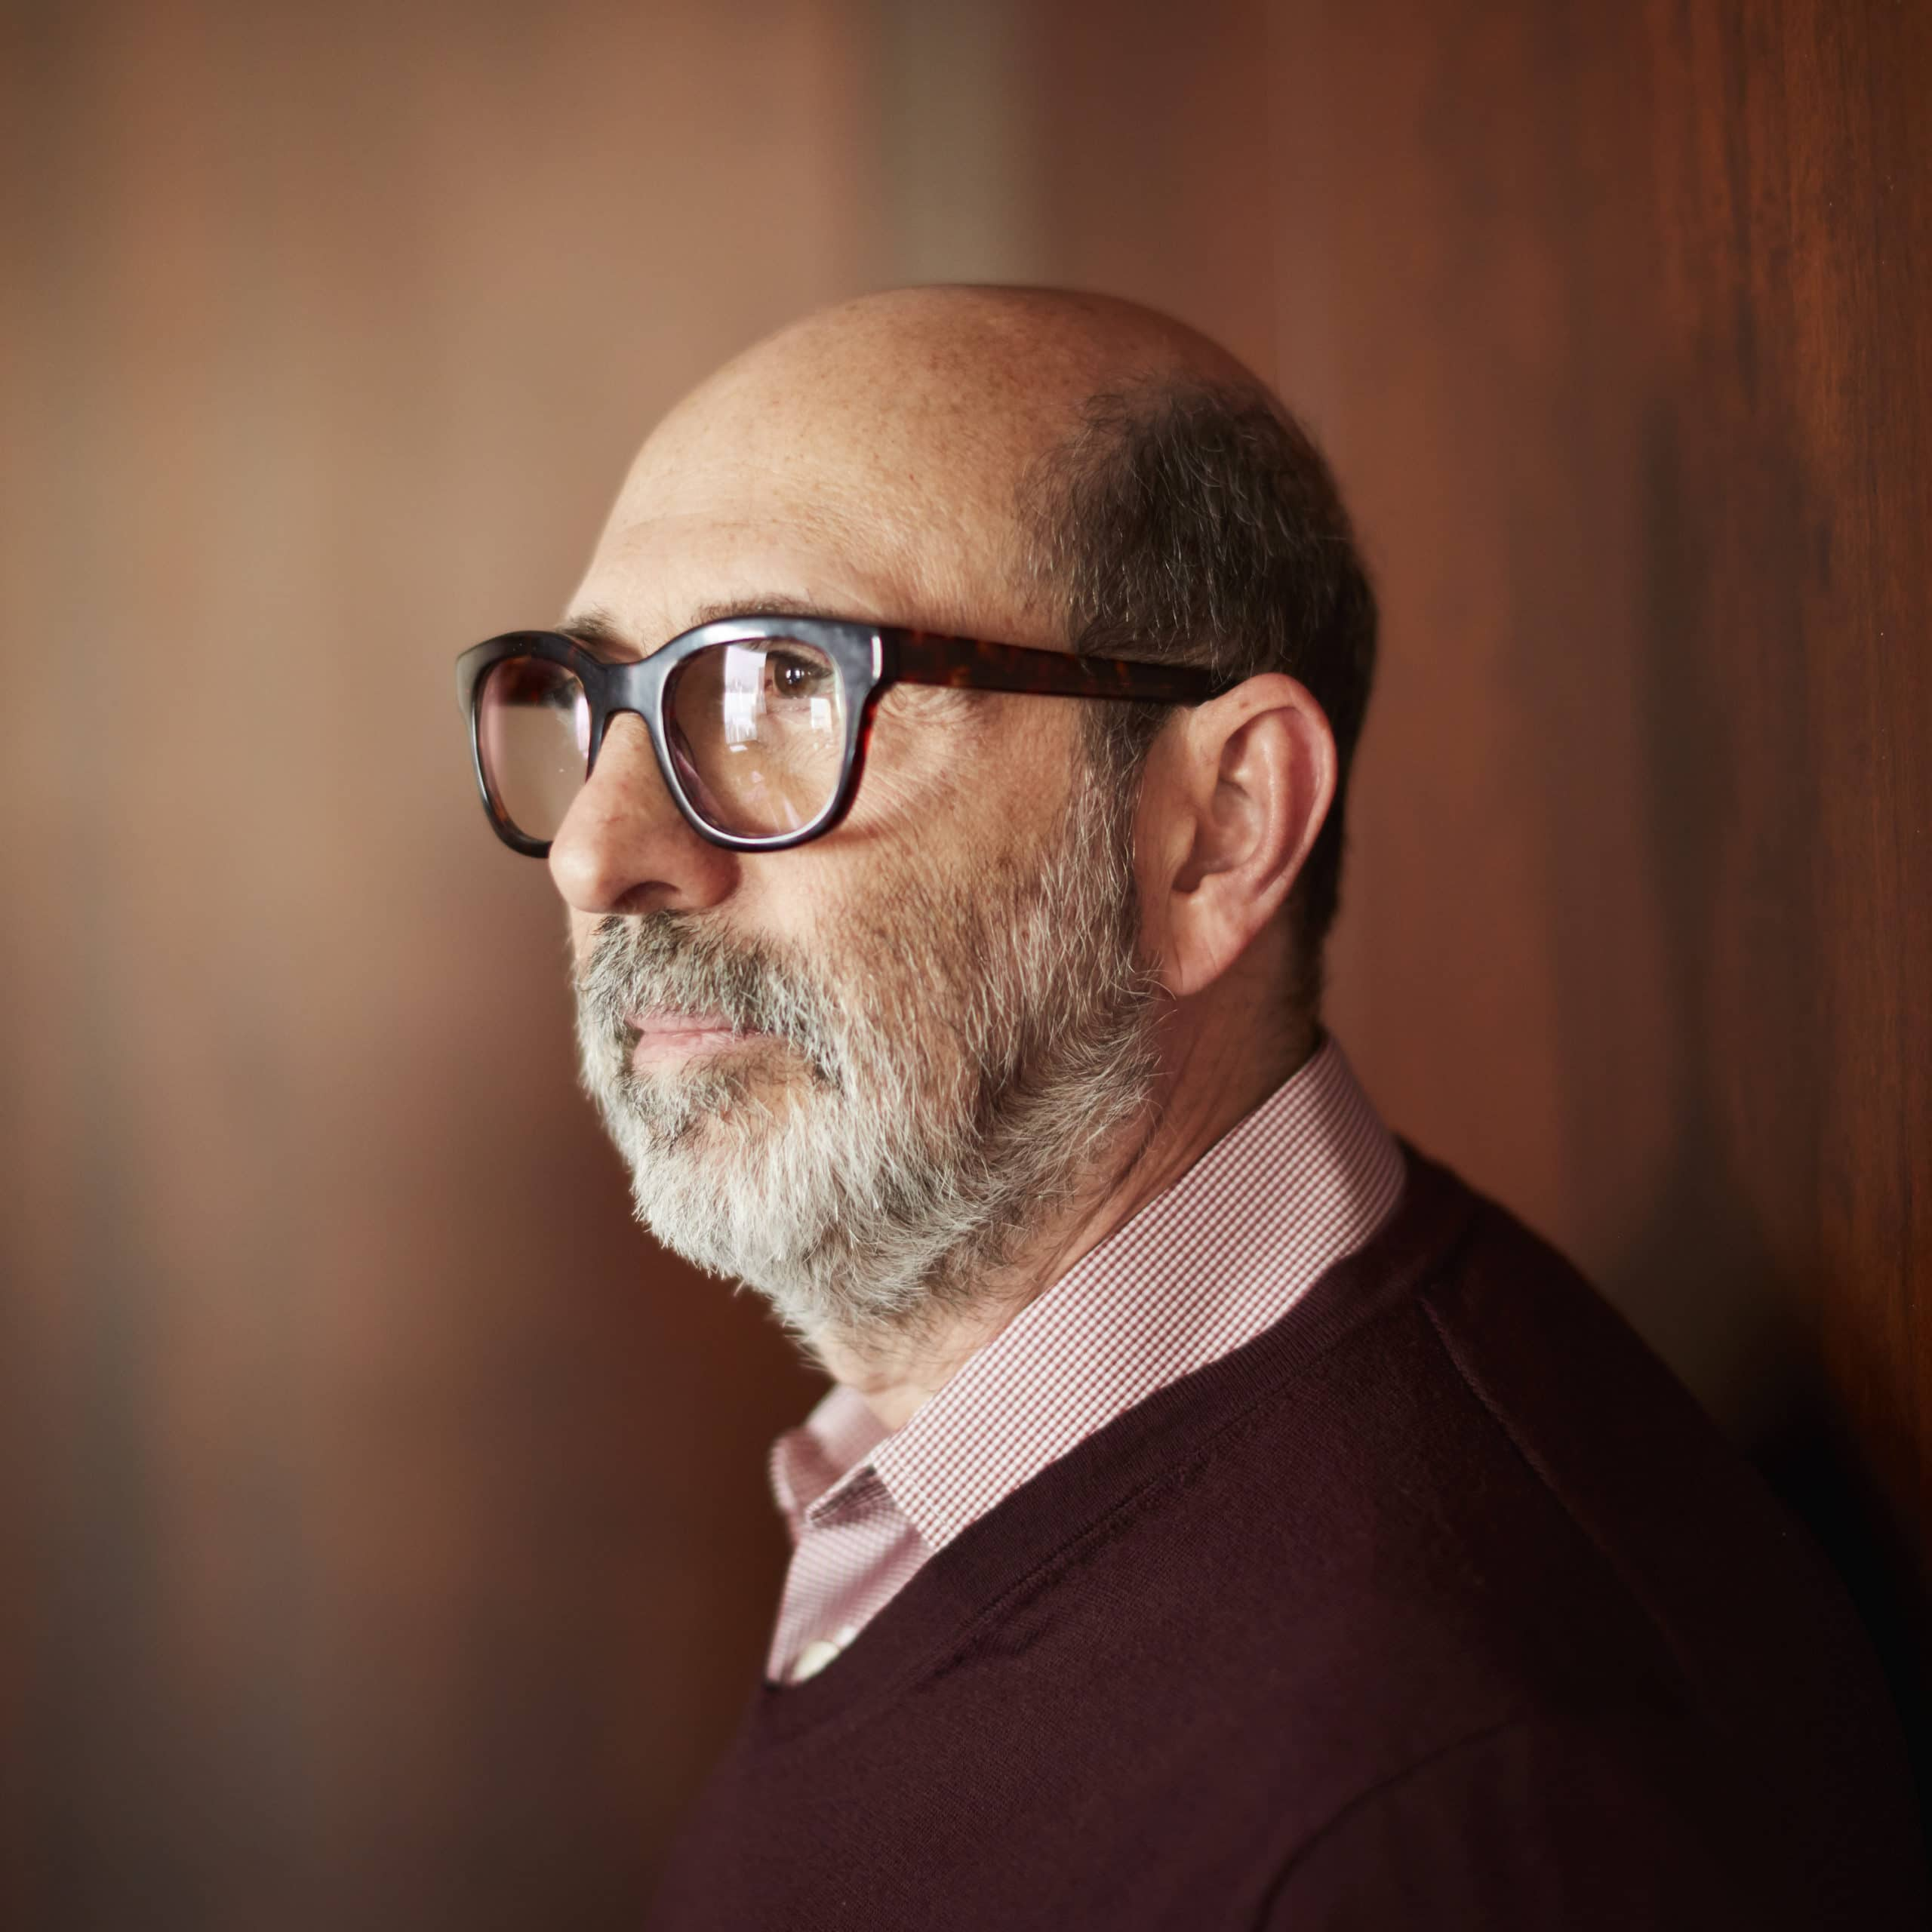 Profile picture of Isay Weinfeld taken by Bob Wolfenson.